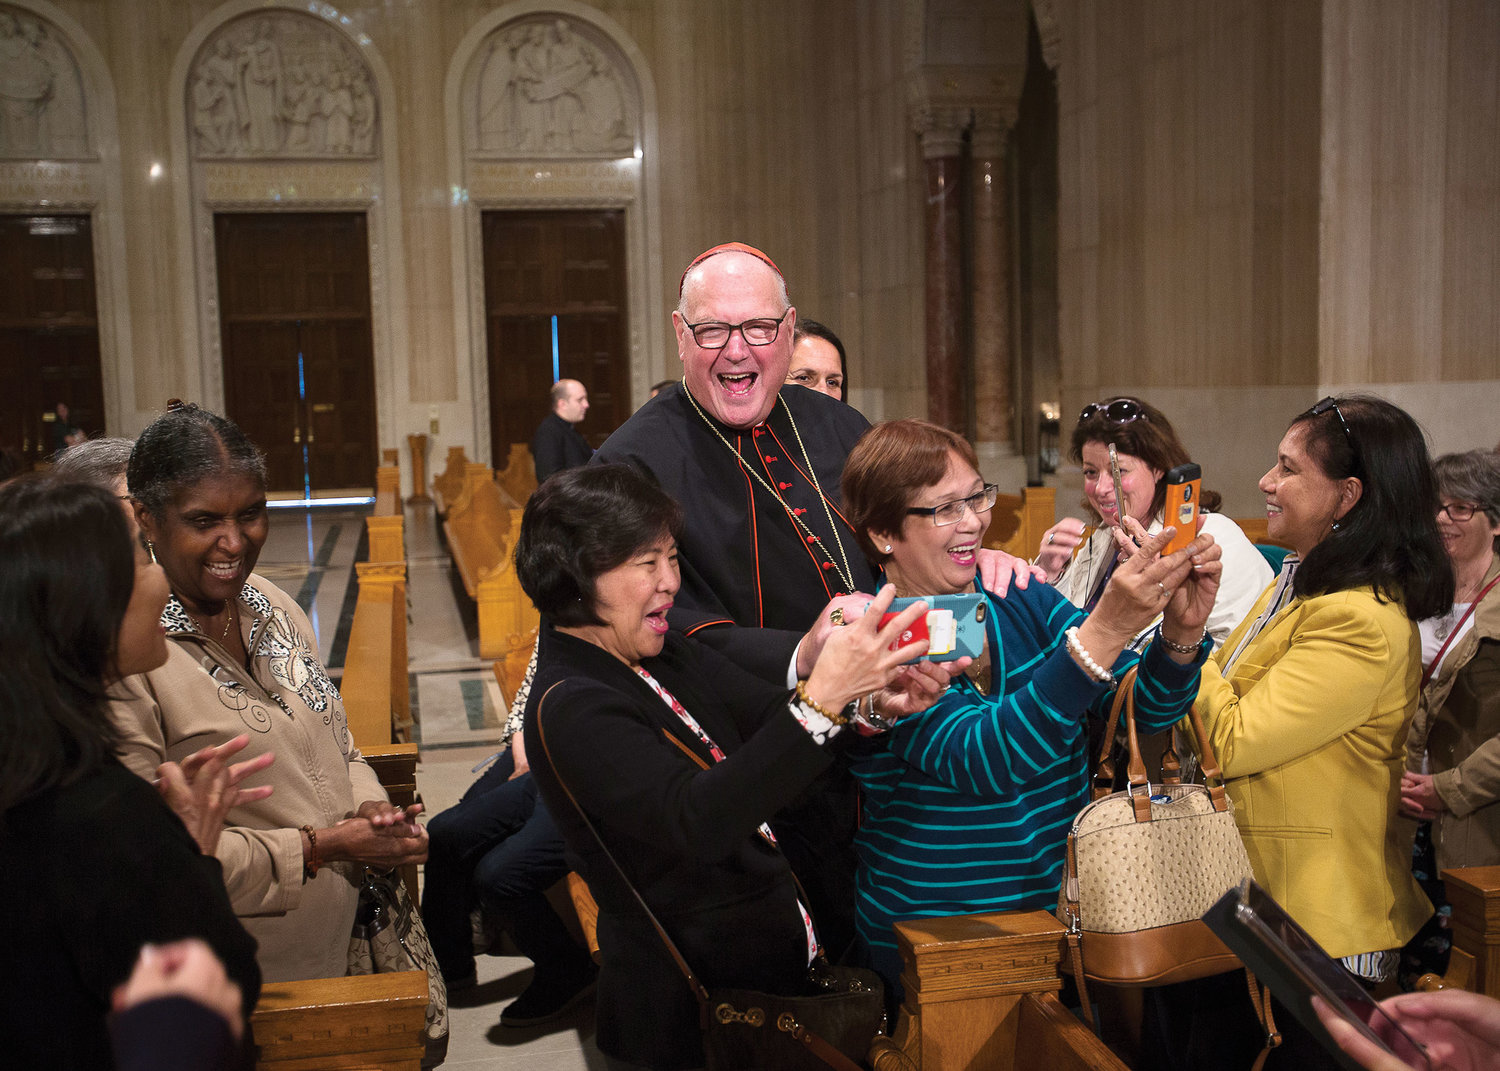 Many pilgrims sought to include the cardinal in a group photo at the shrine.